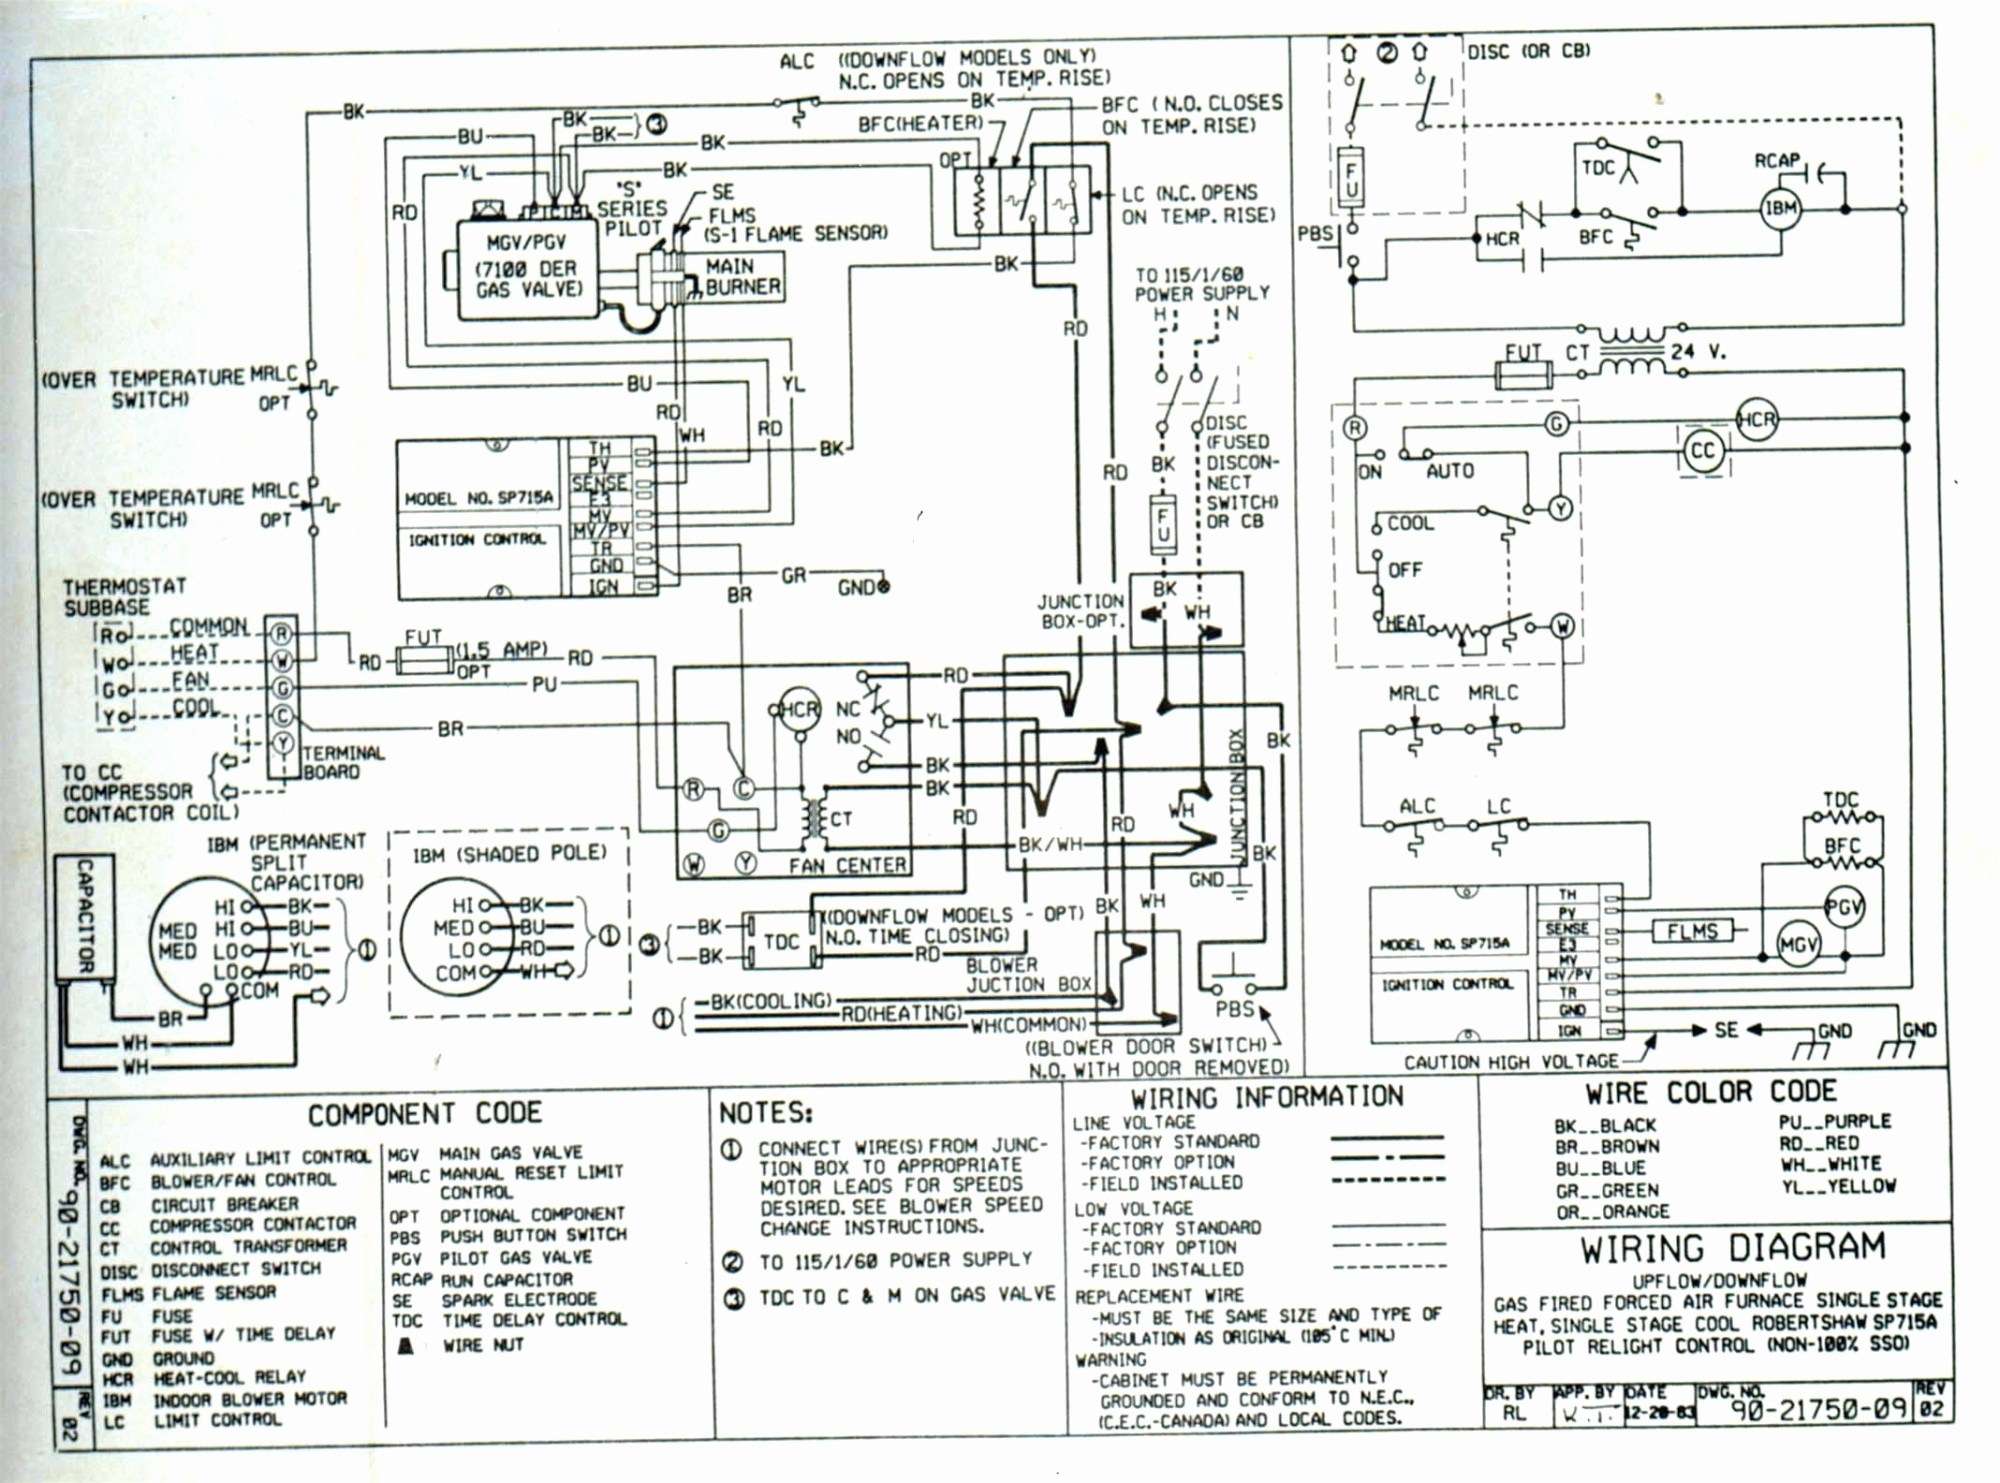 hight resolution of bodine electric dc motor wiring diagram bodine electric motor wiring diagram ac gear motor wiring